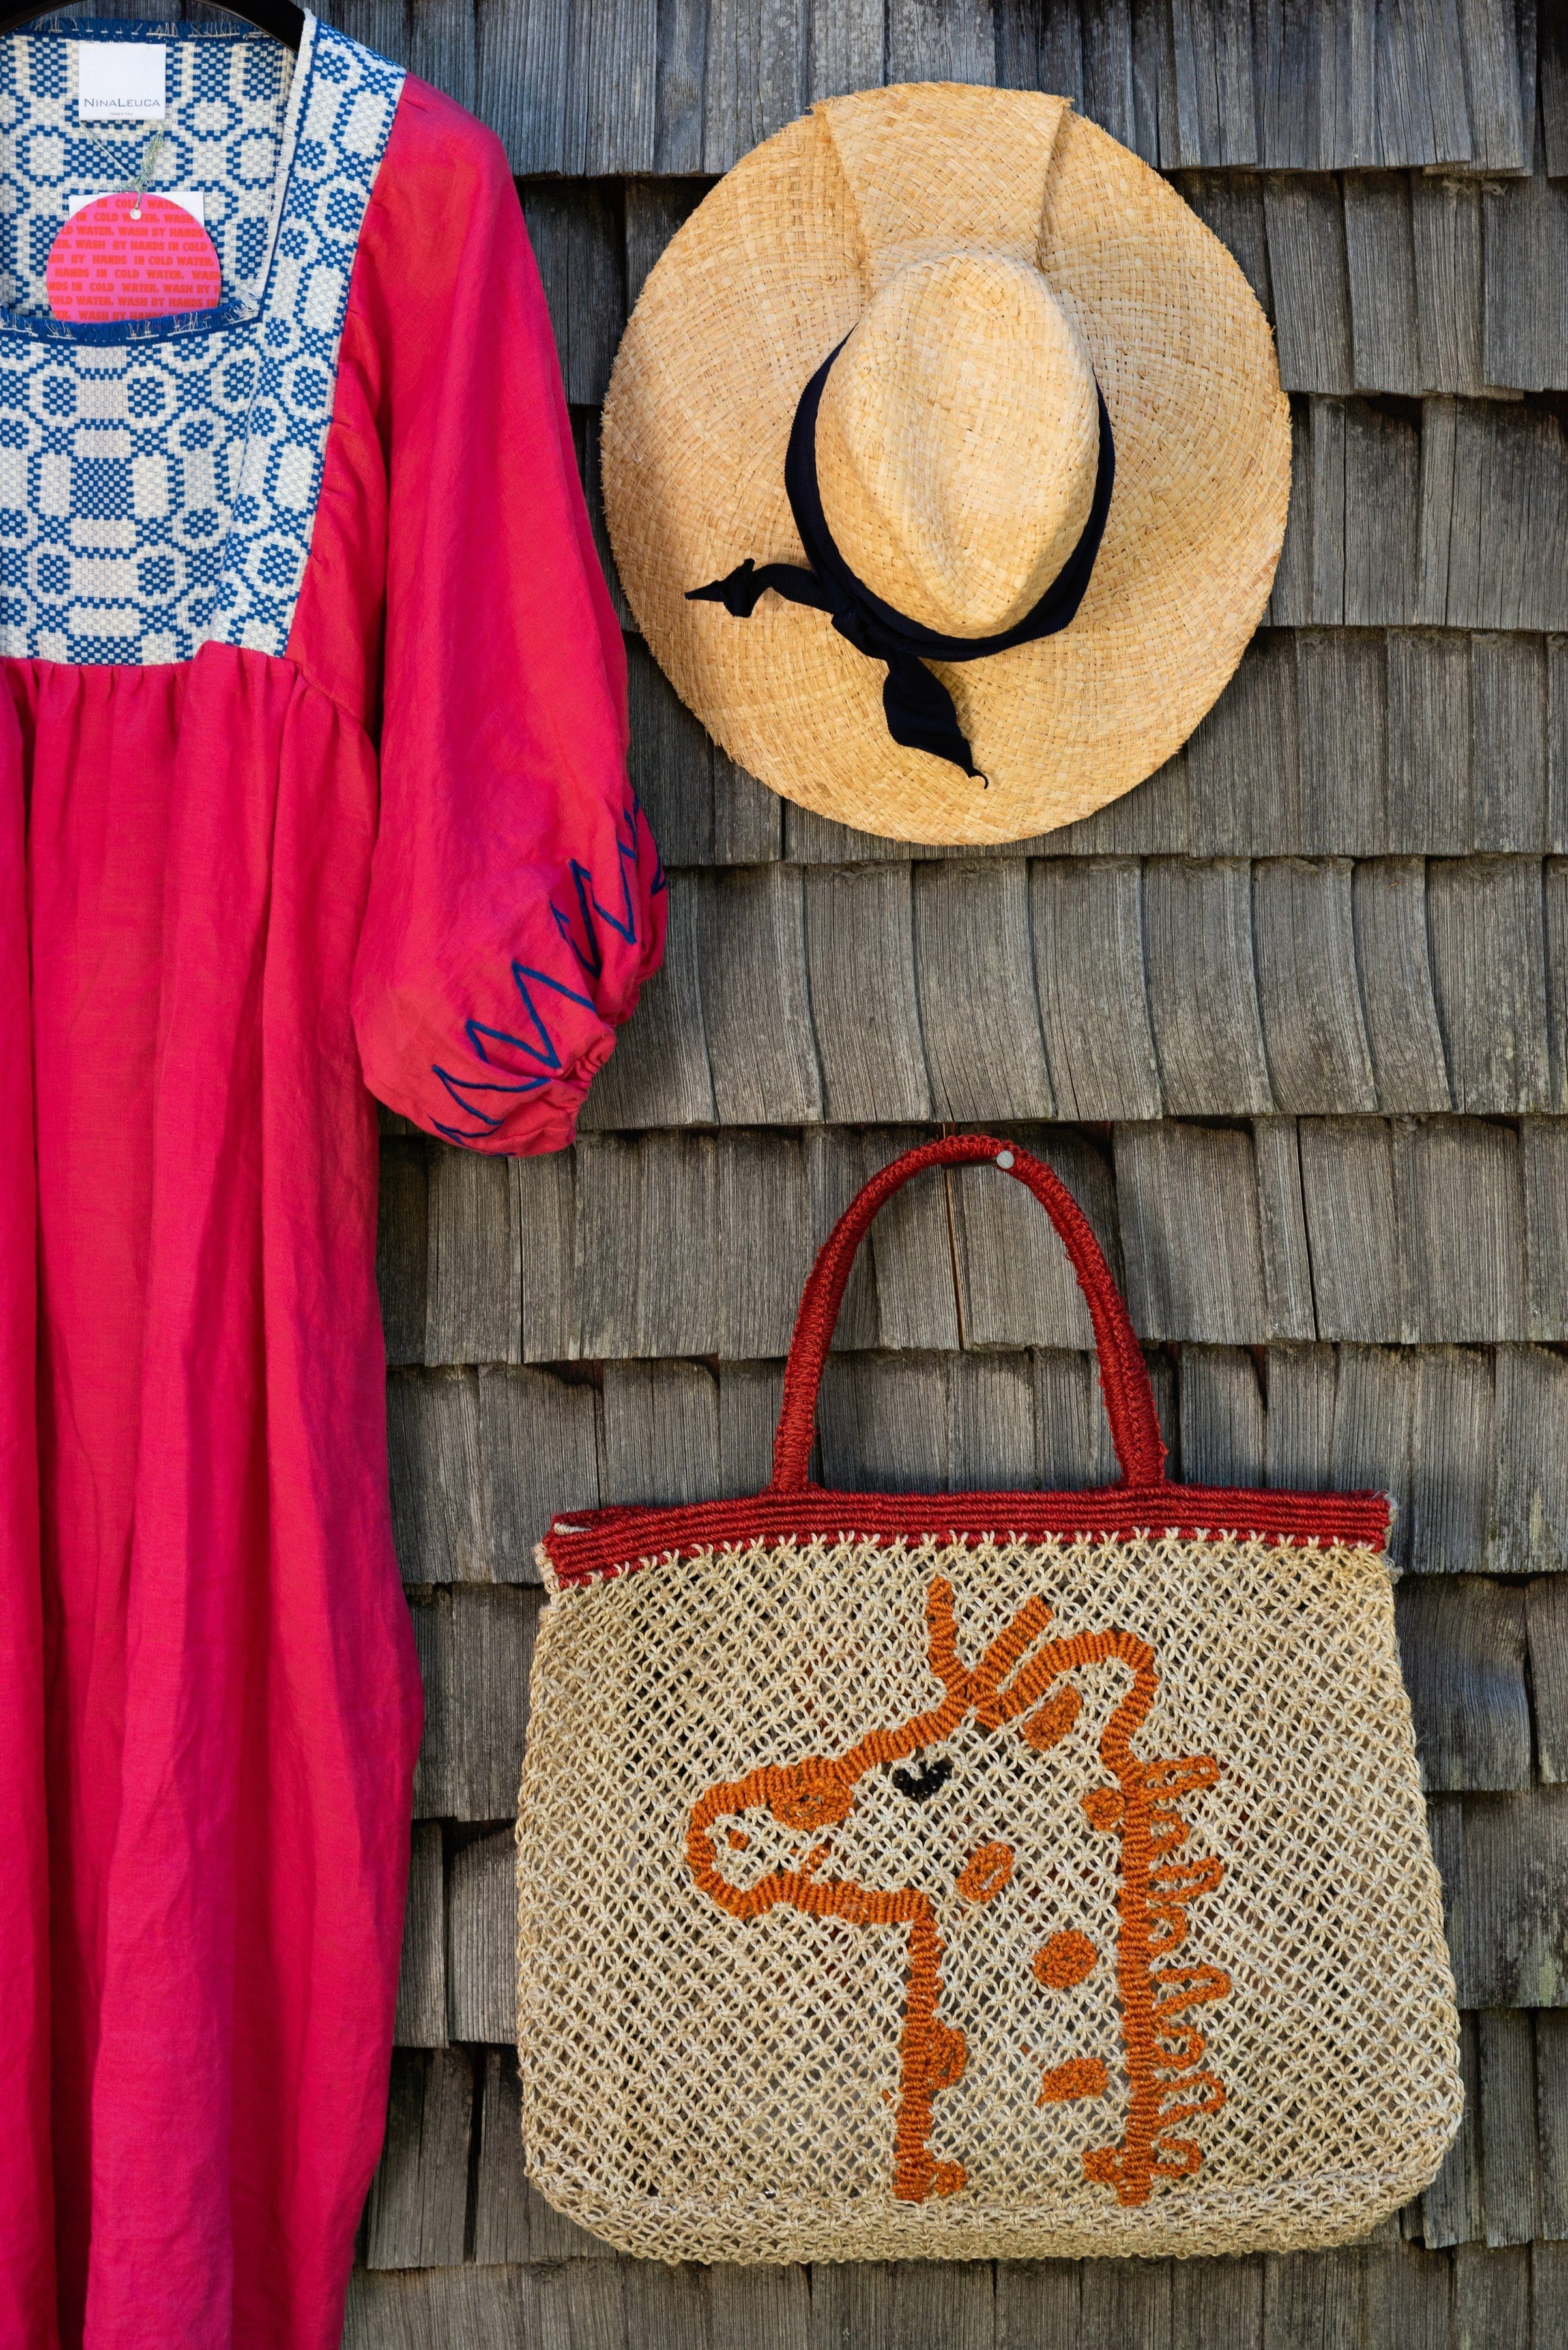 Handcrafted jute bag from The Jacksons